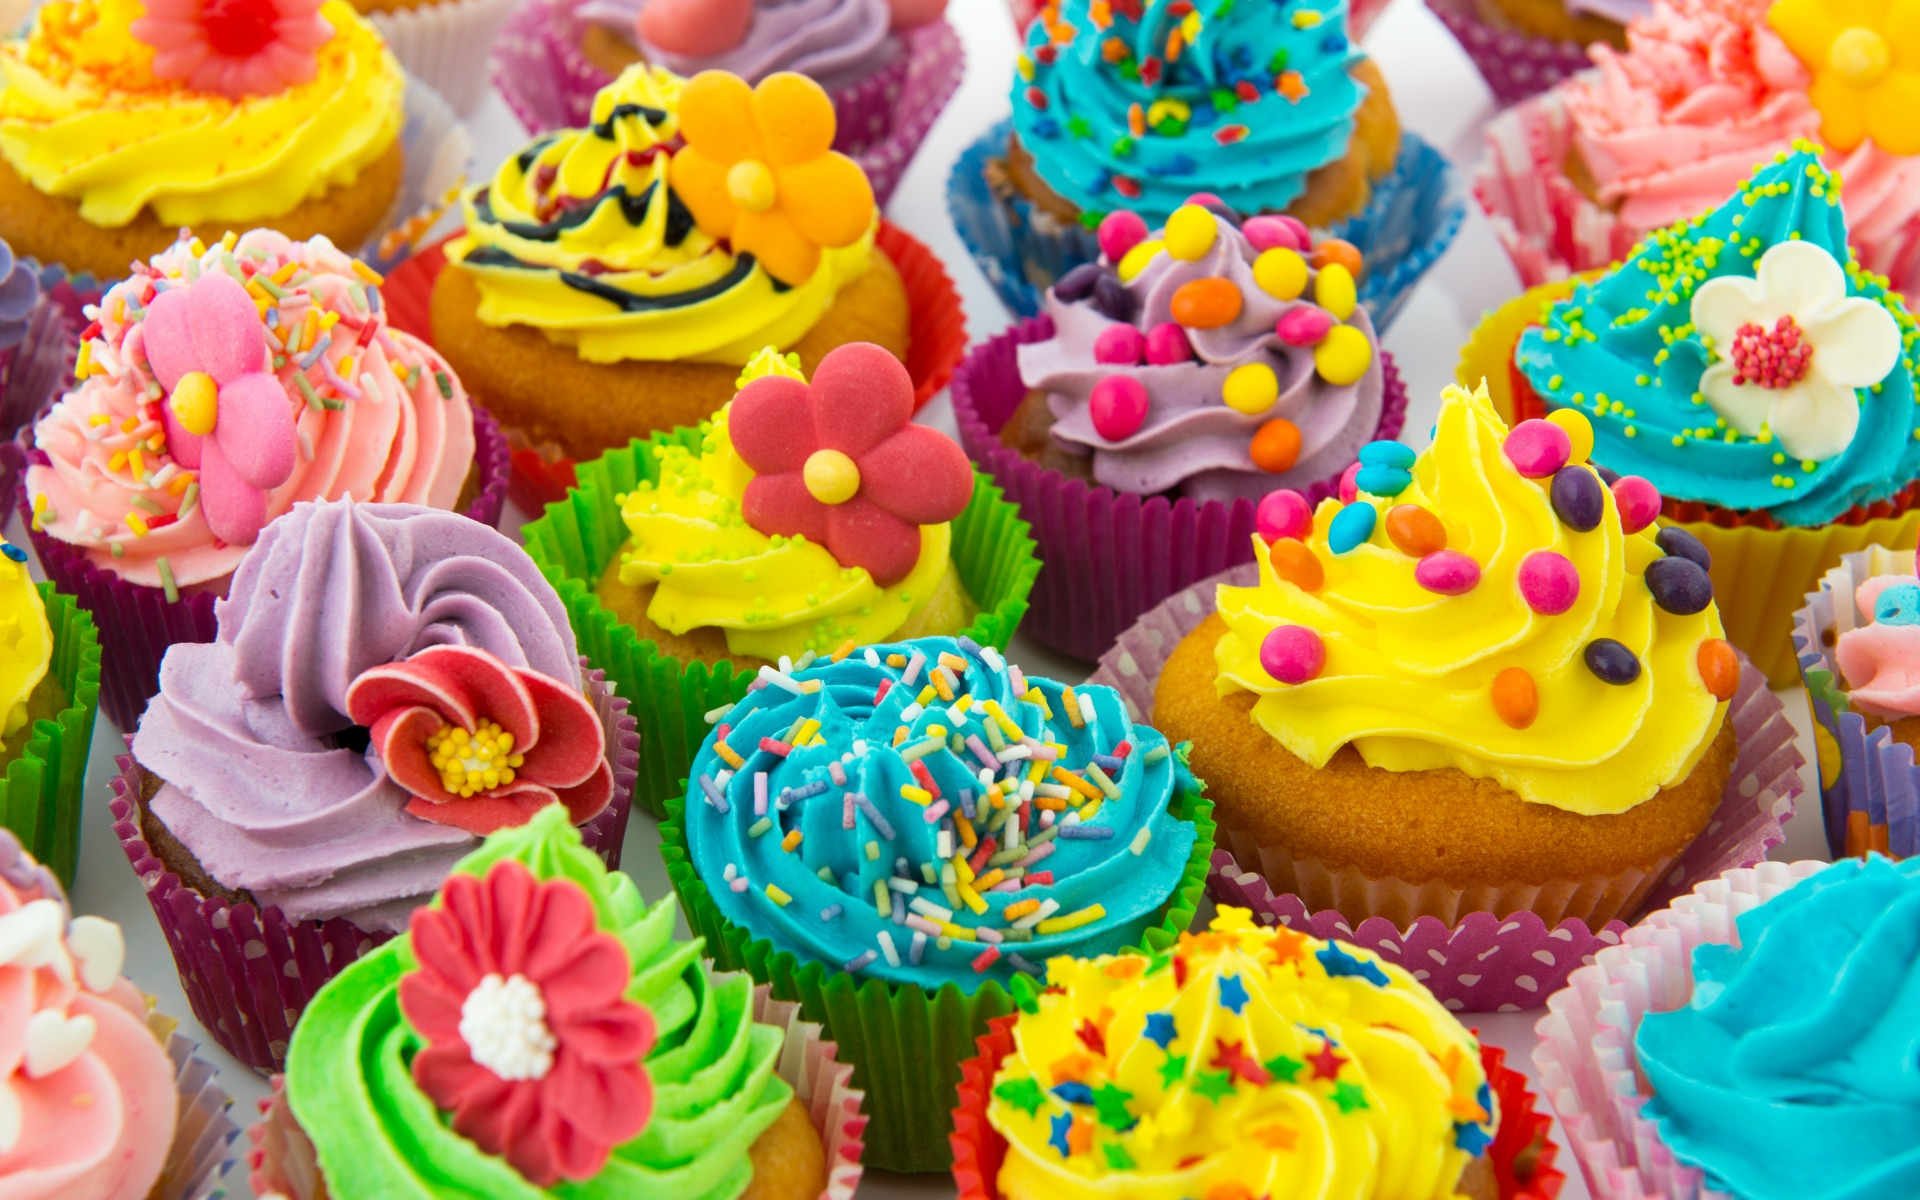 cupcakes-colorful-dessert.jpg